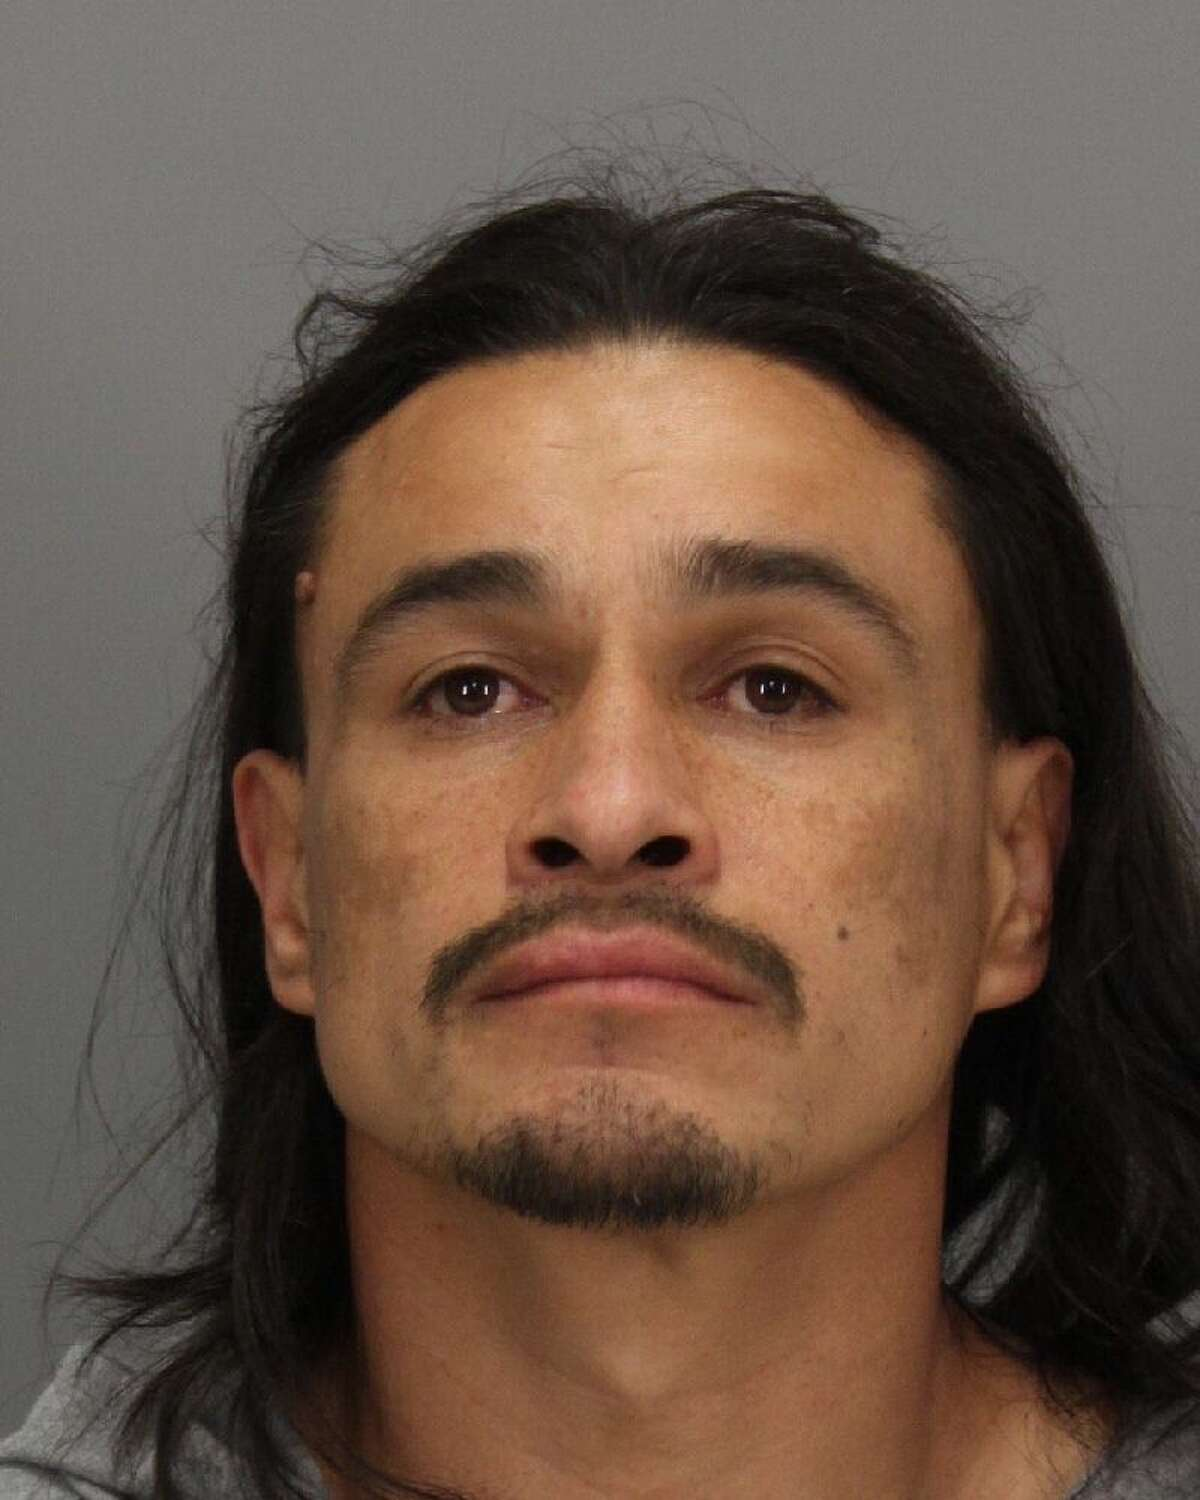 Miguel Zaragoza, 39, was arrested Sunday after sneaking onto a restricted loading ramp and stealing a truck at the San Jose airport, police said.